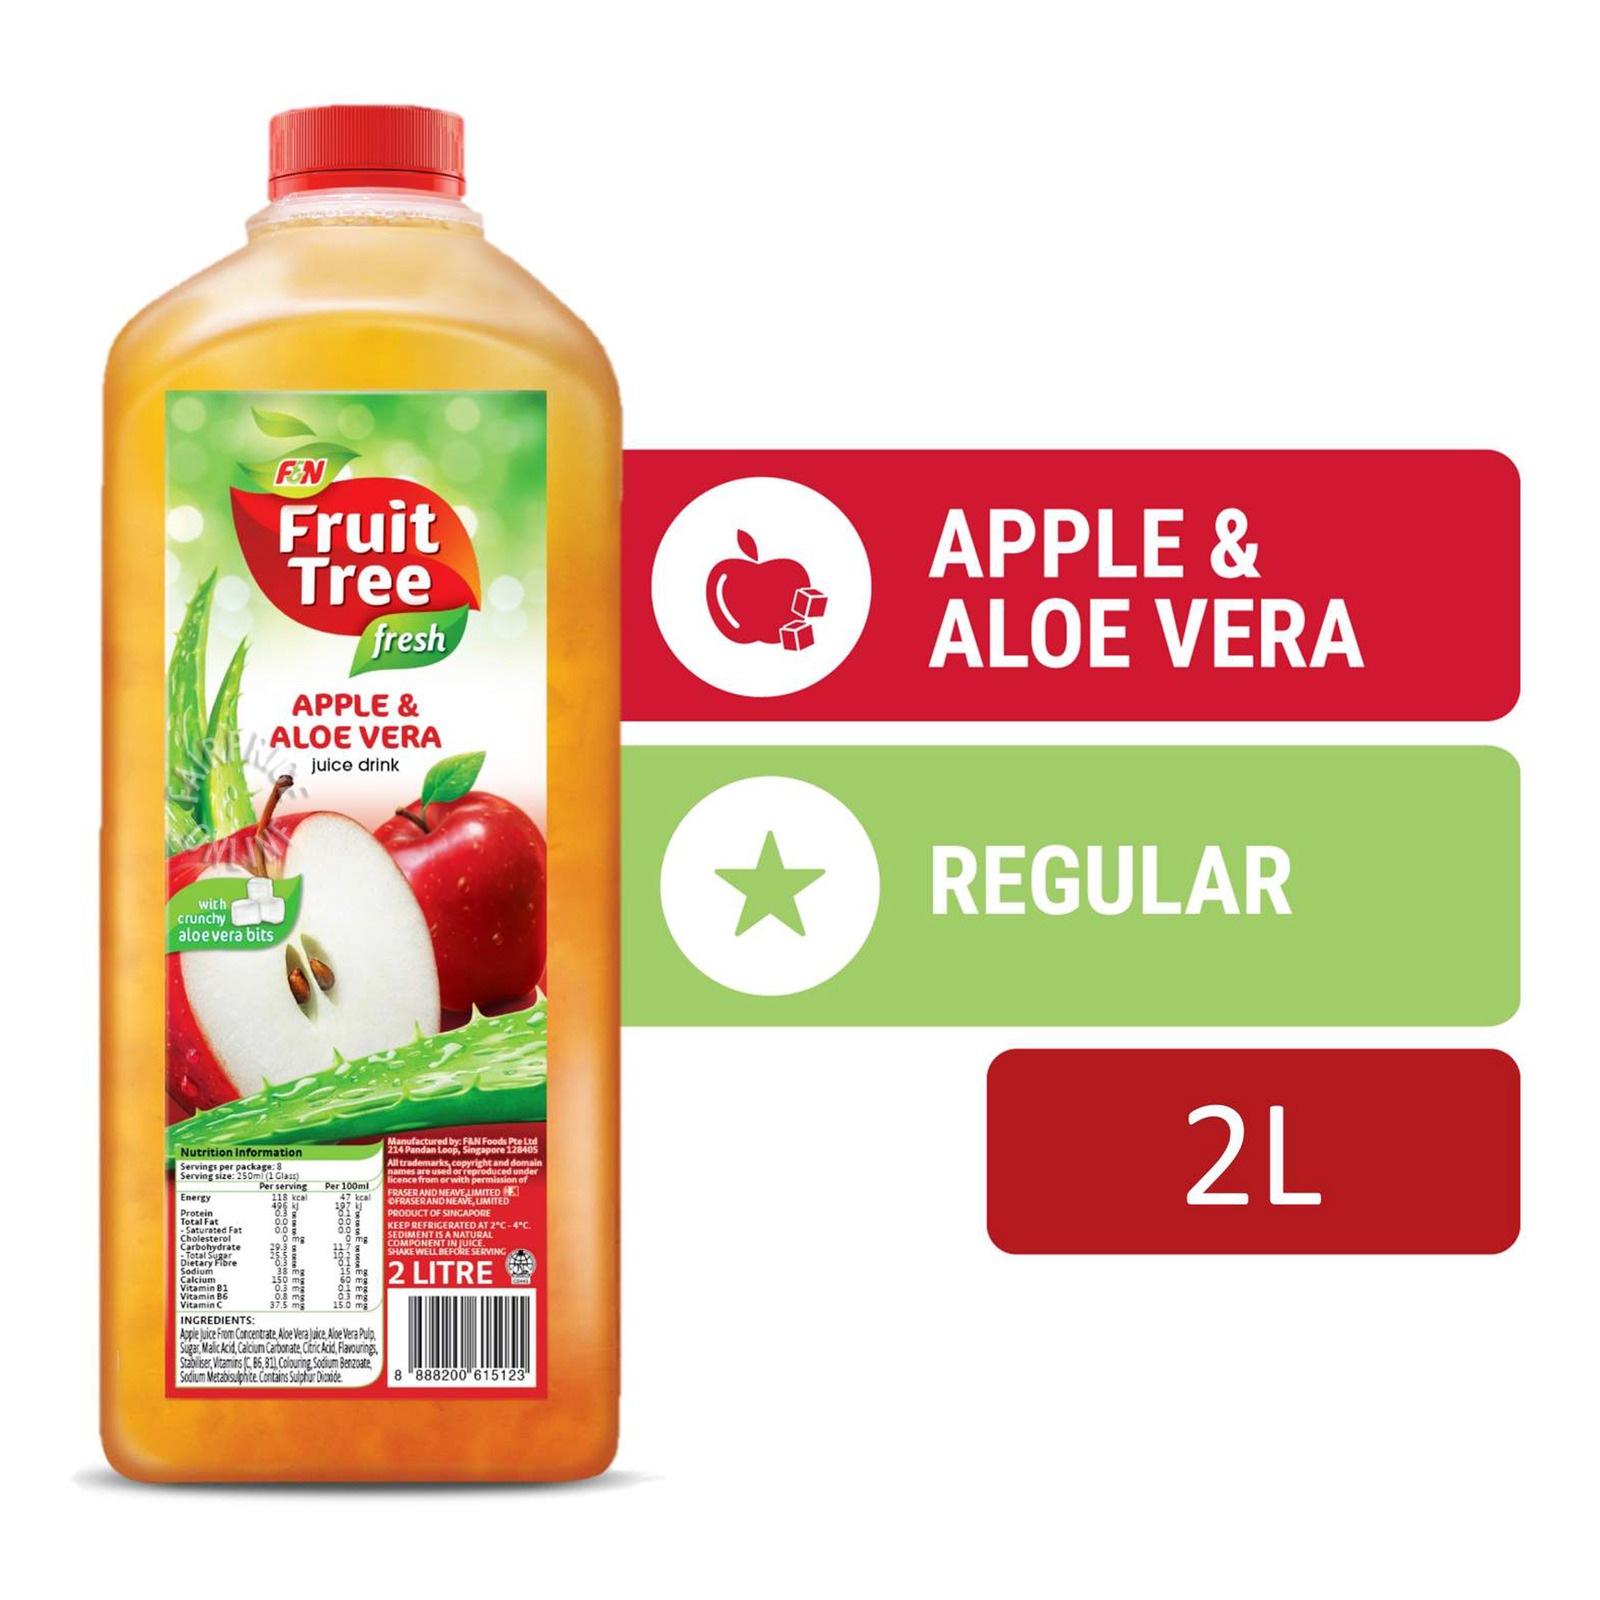 F&N Fruit Tree Fresh Juice - Apple & Aloe Vera